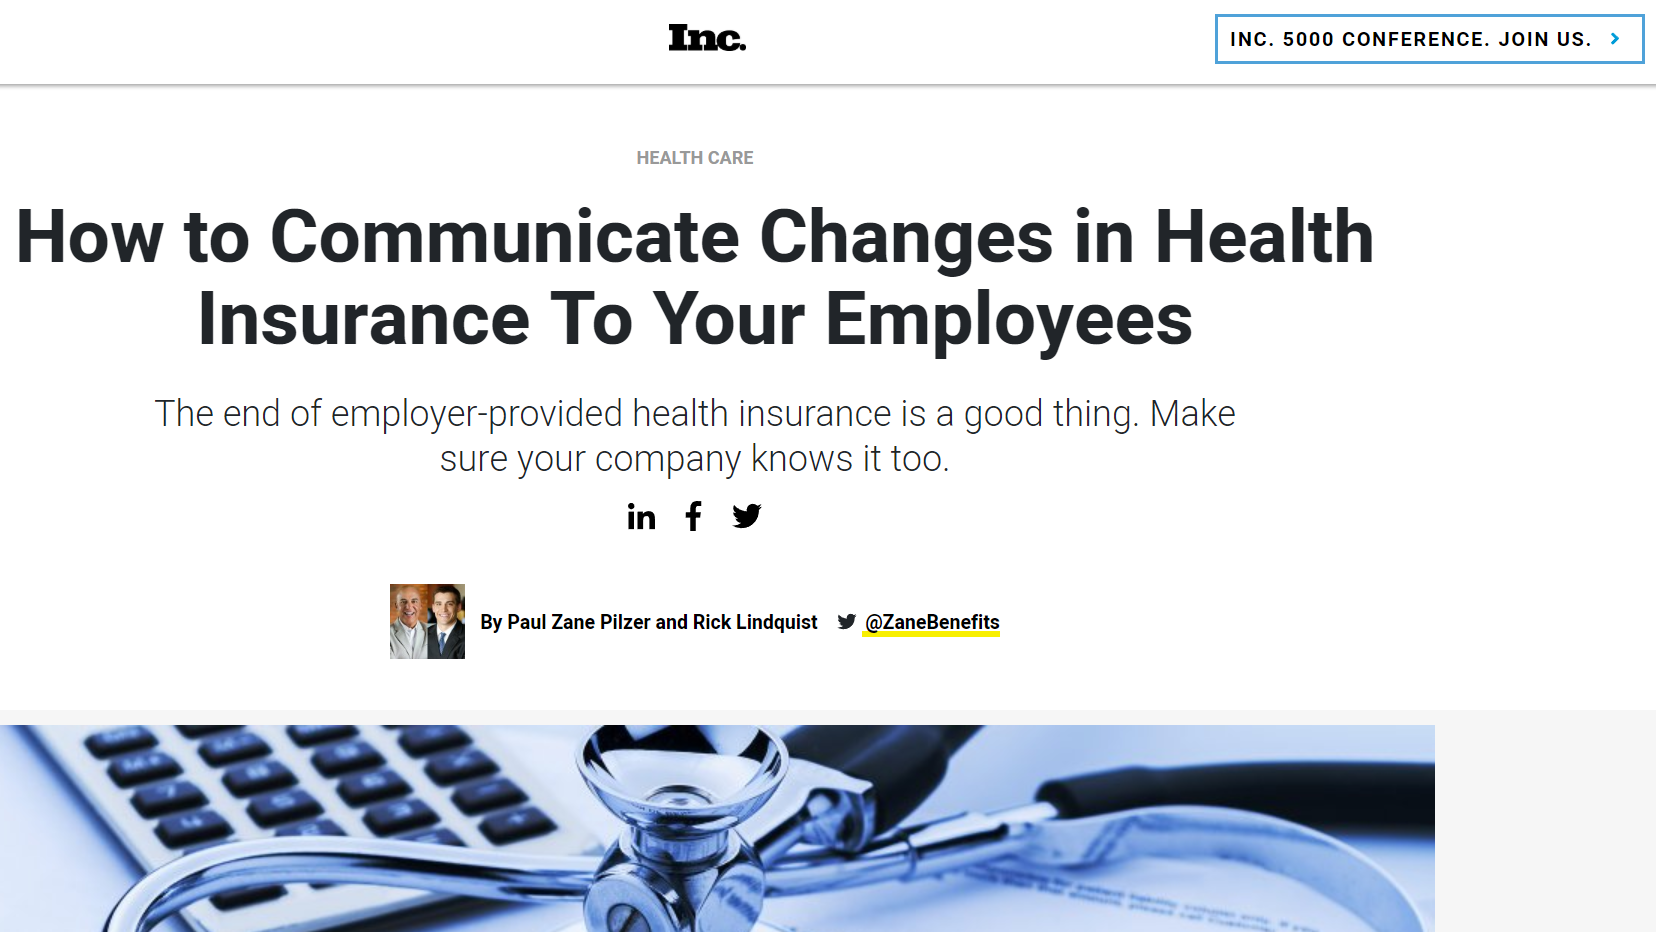 How to Communicate Changes in Health Insurance To Your Employees